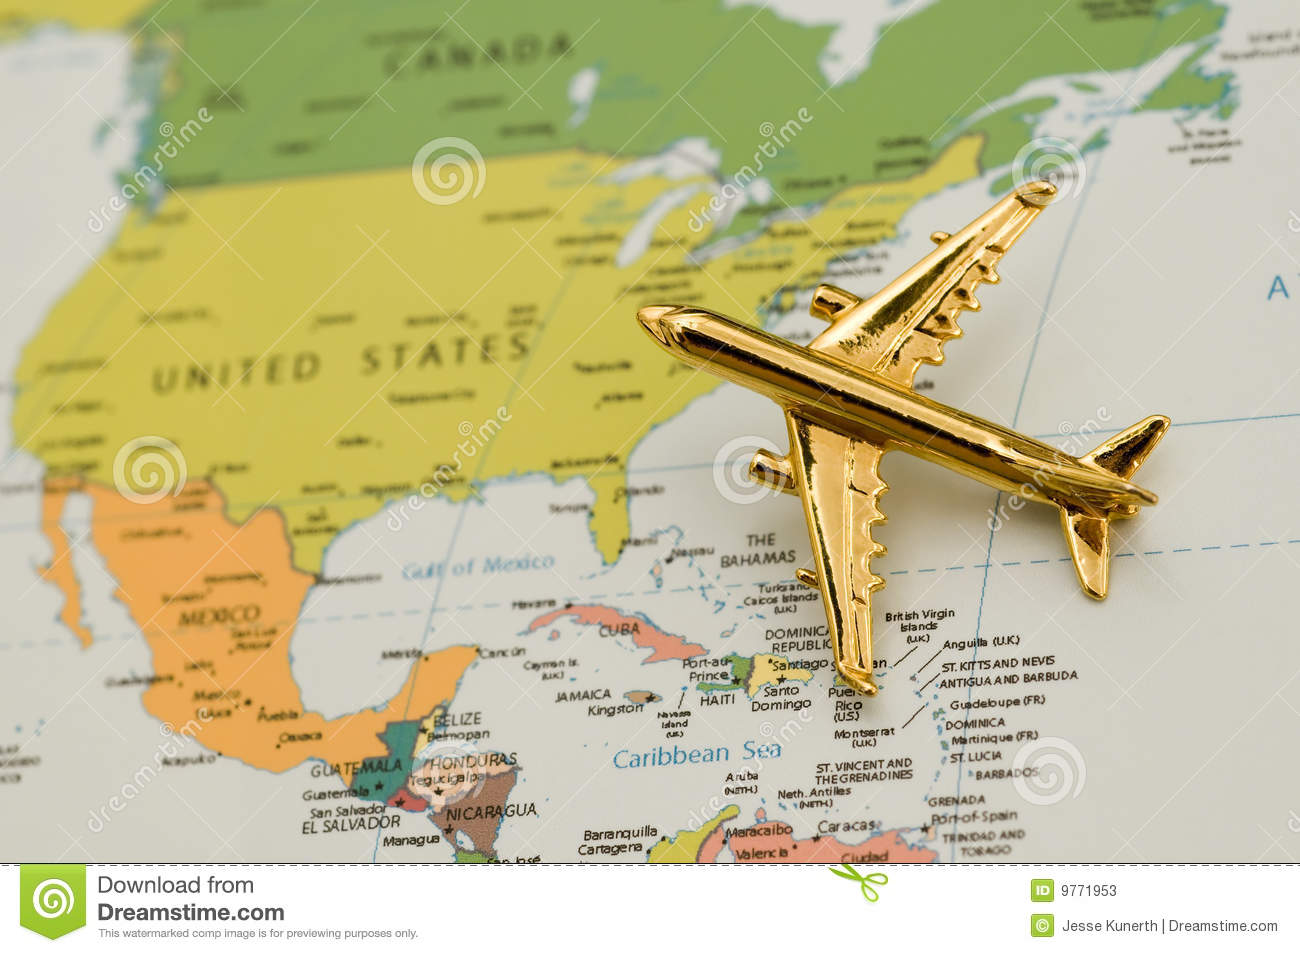 Plane Traveling To North America Photos Image 9771953 – North America Travel Map